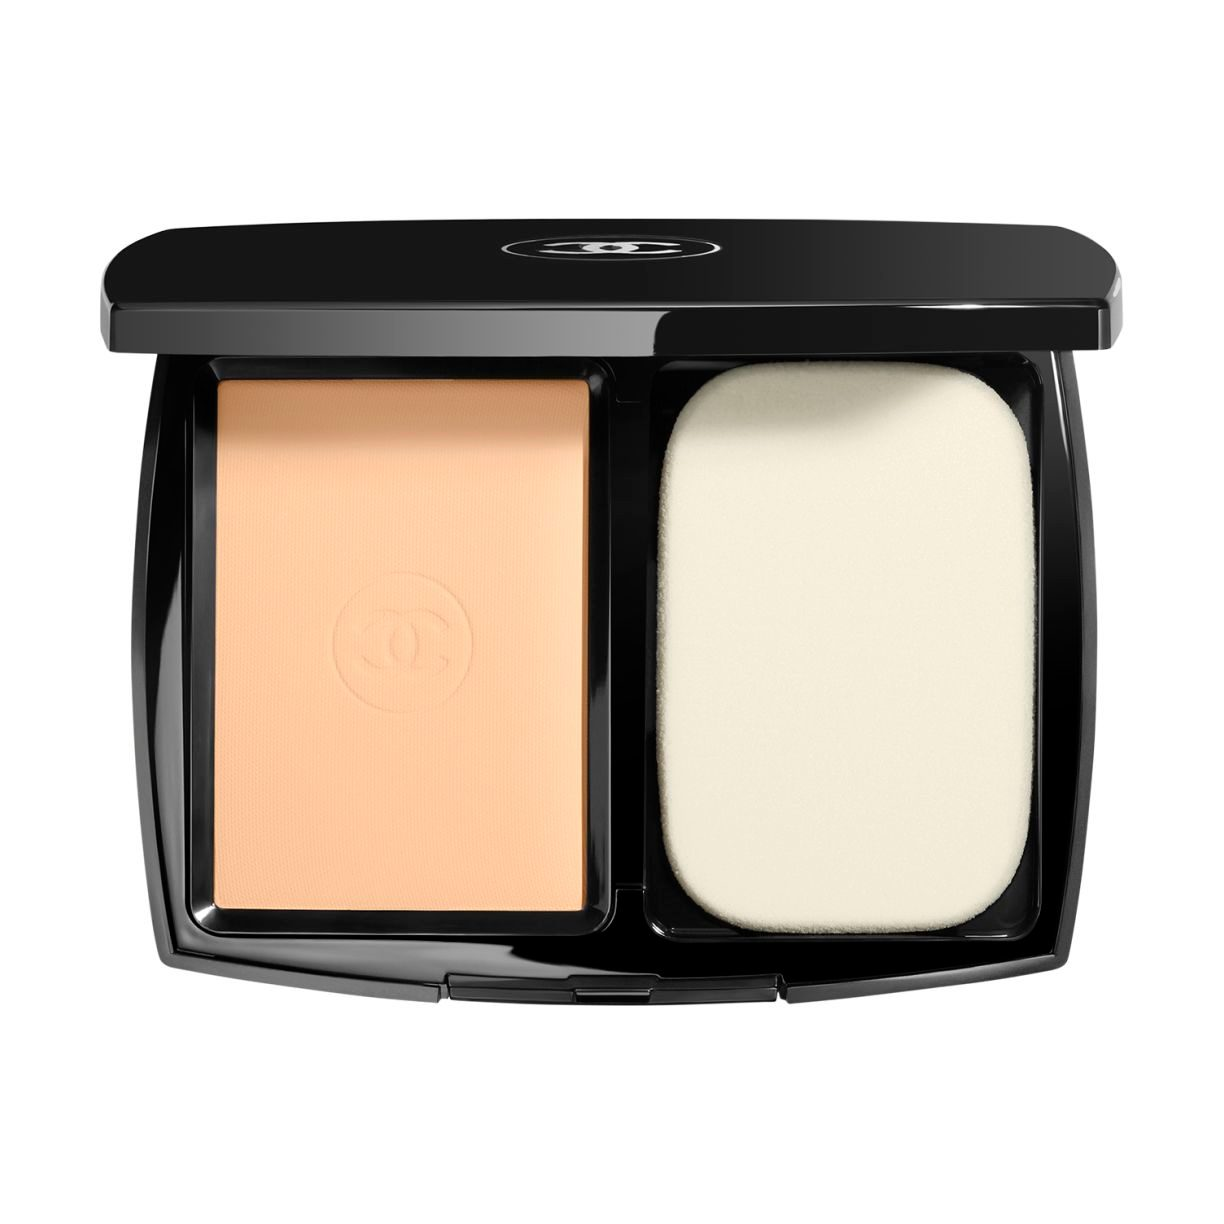 LE TEINT ULTRA TENUE ULTRAWEAR FLAWLESS COMPACT FOUNDATION SPF 15 30 BEIGE 13G